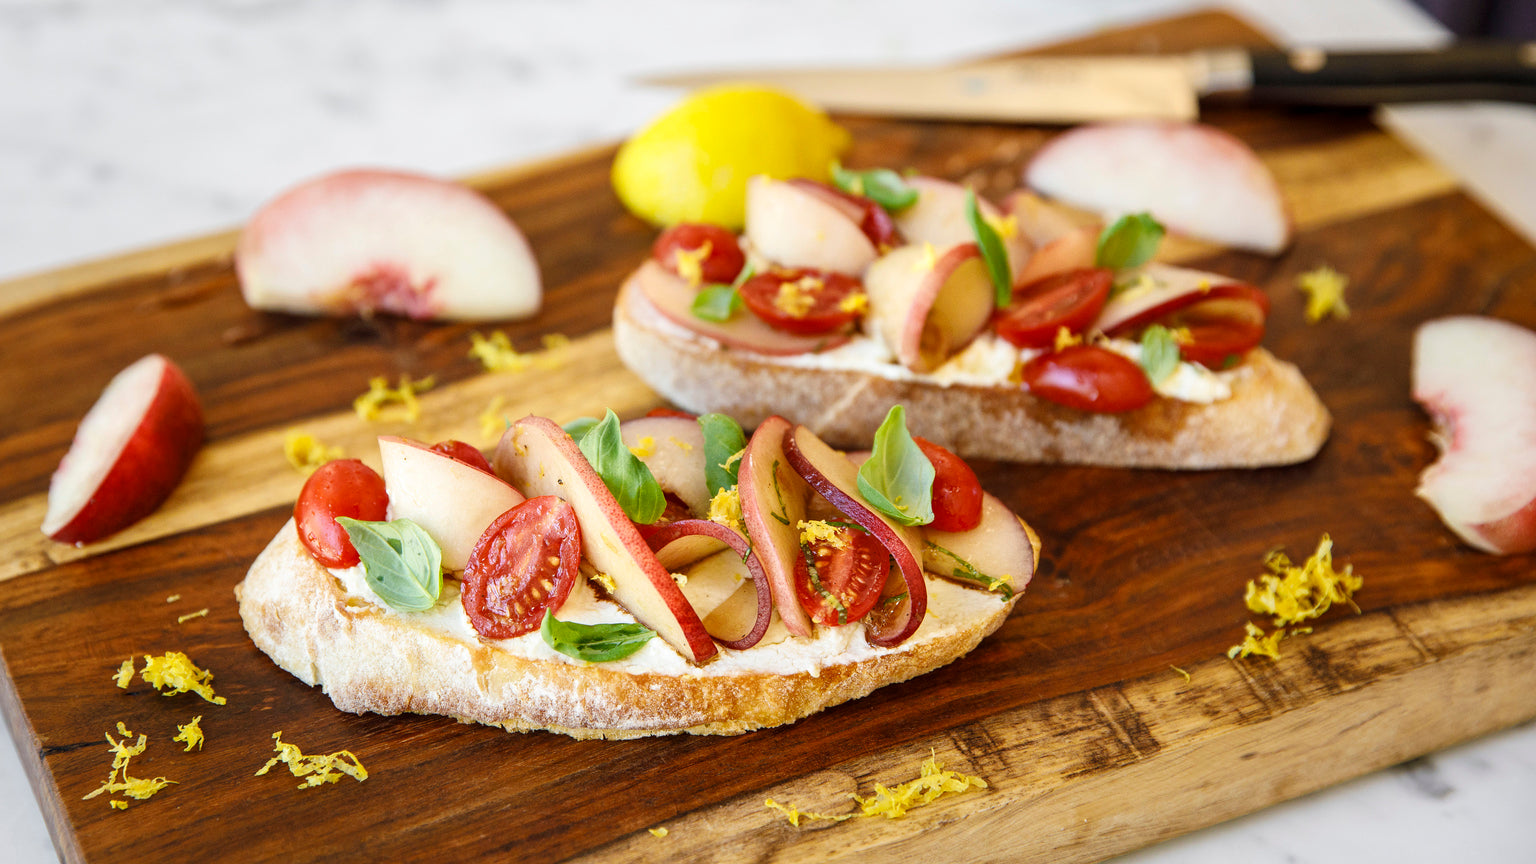 Peach and Tomato Bruschetta